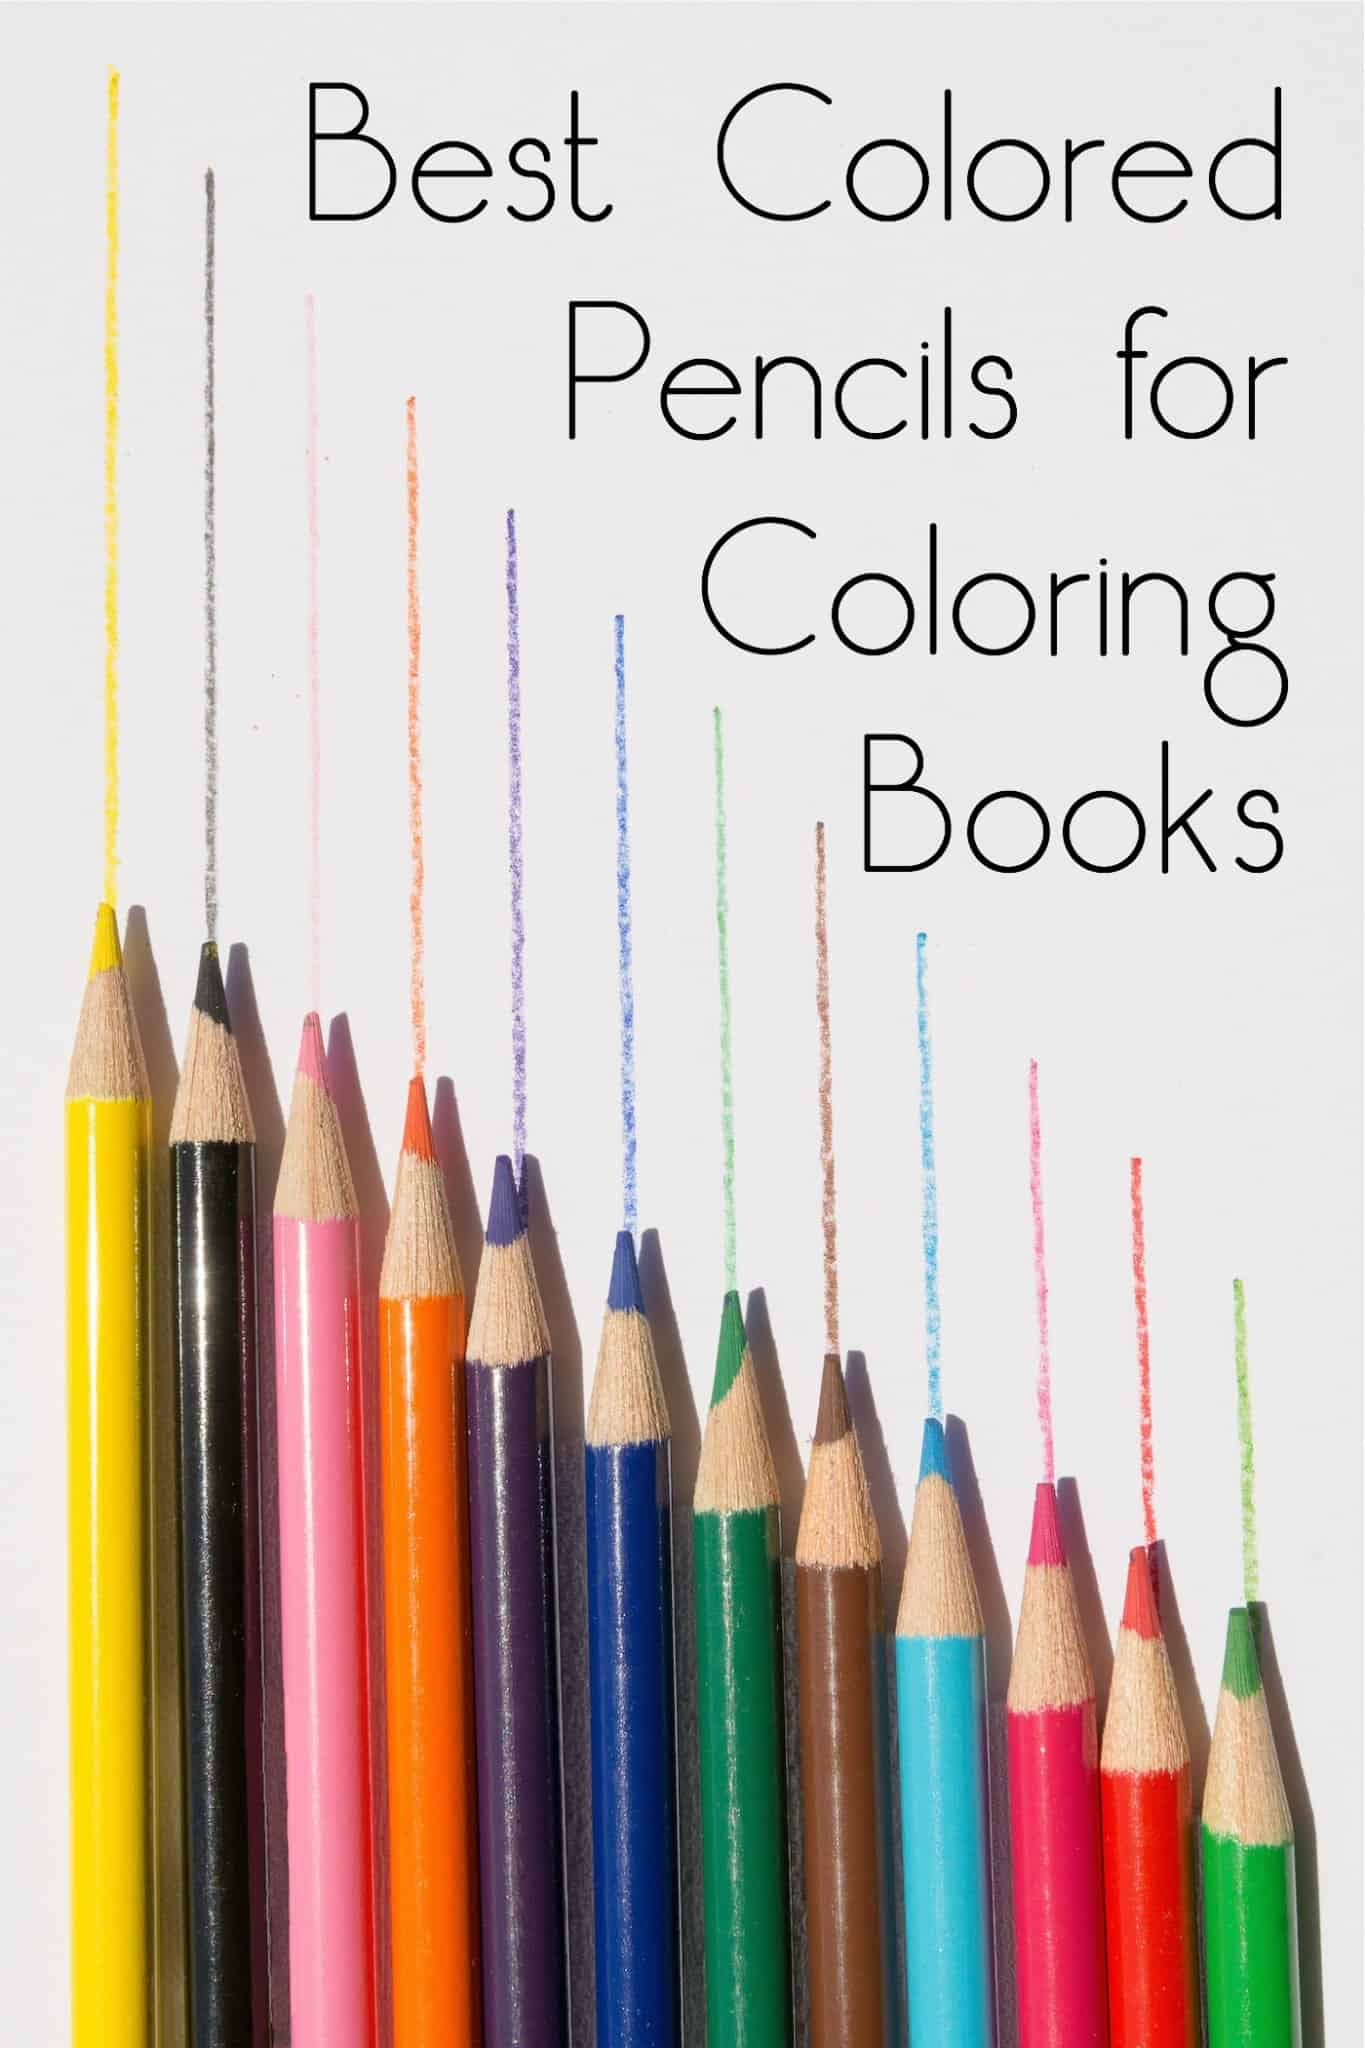 Best Colored Pencils for Coloring Books - DIY Candy